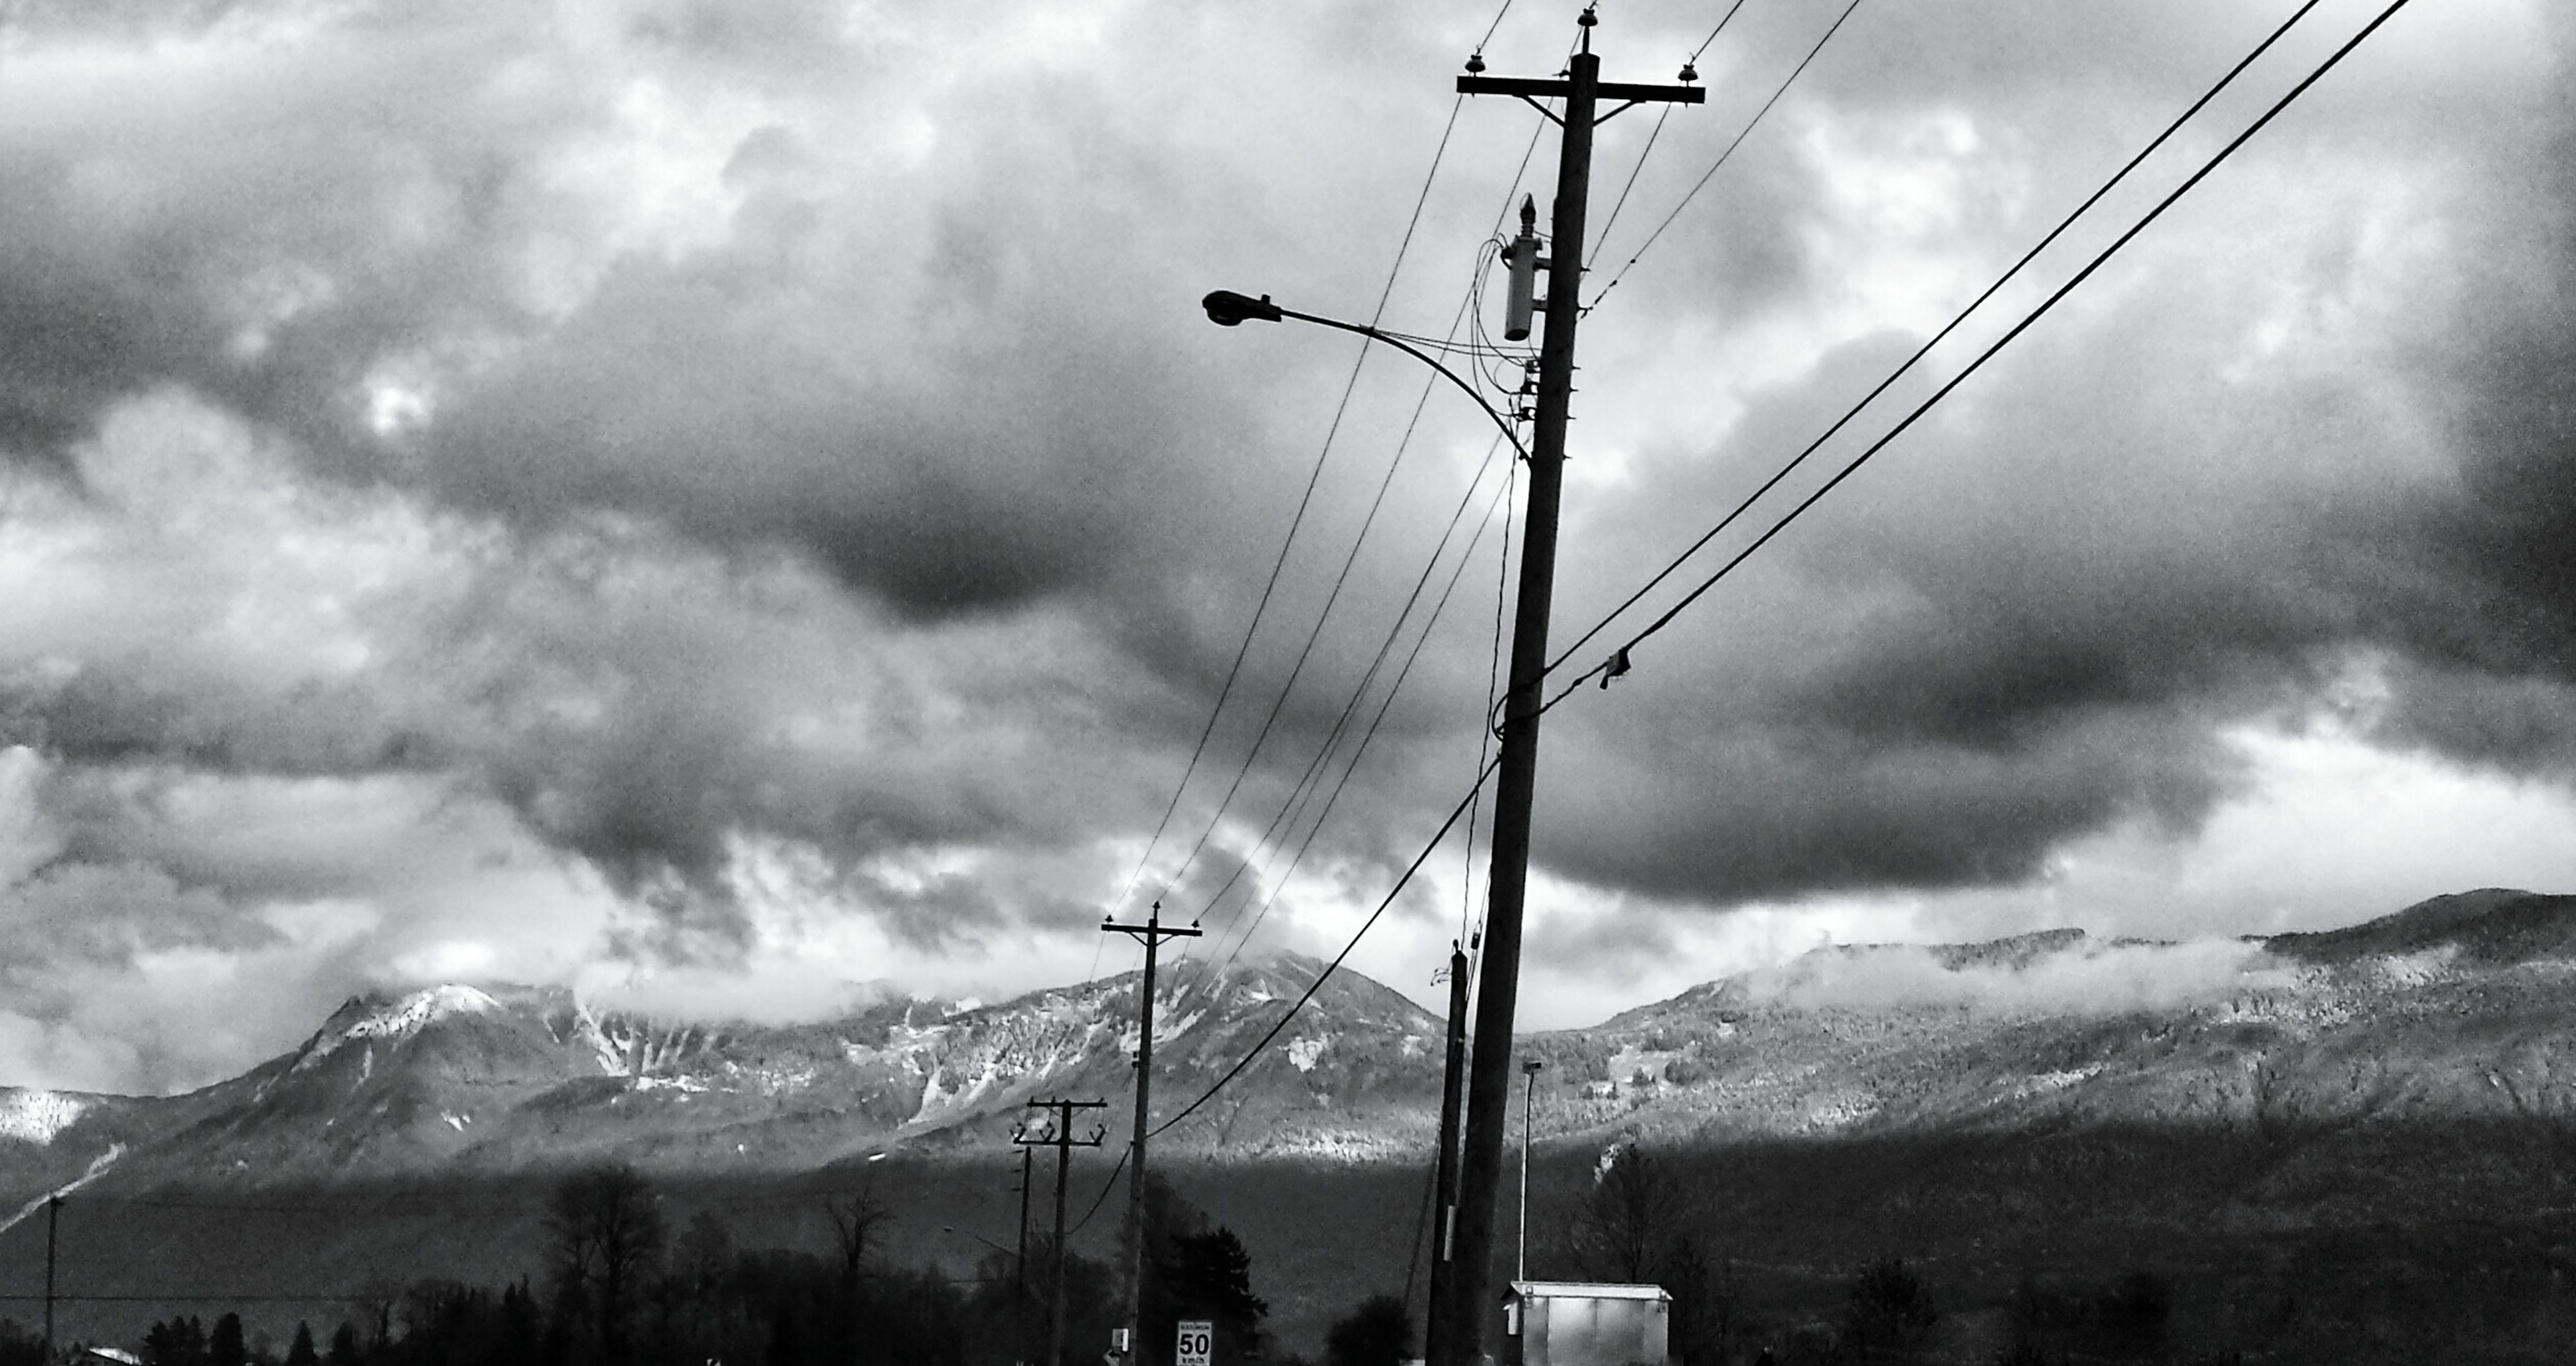 power line, electricity pylon, mountain, electricity, sky, power supply, cloud - sky, cable, connection, cloudy, fuel and power generation, weather, mountain range, low angle view, technology, scenics, overhead cable car, landscape, tranquility, nature